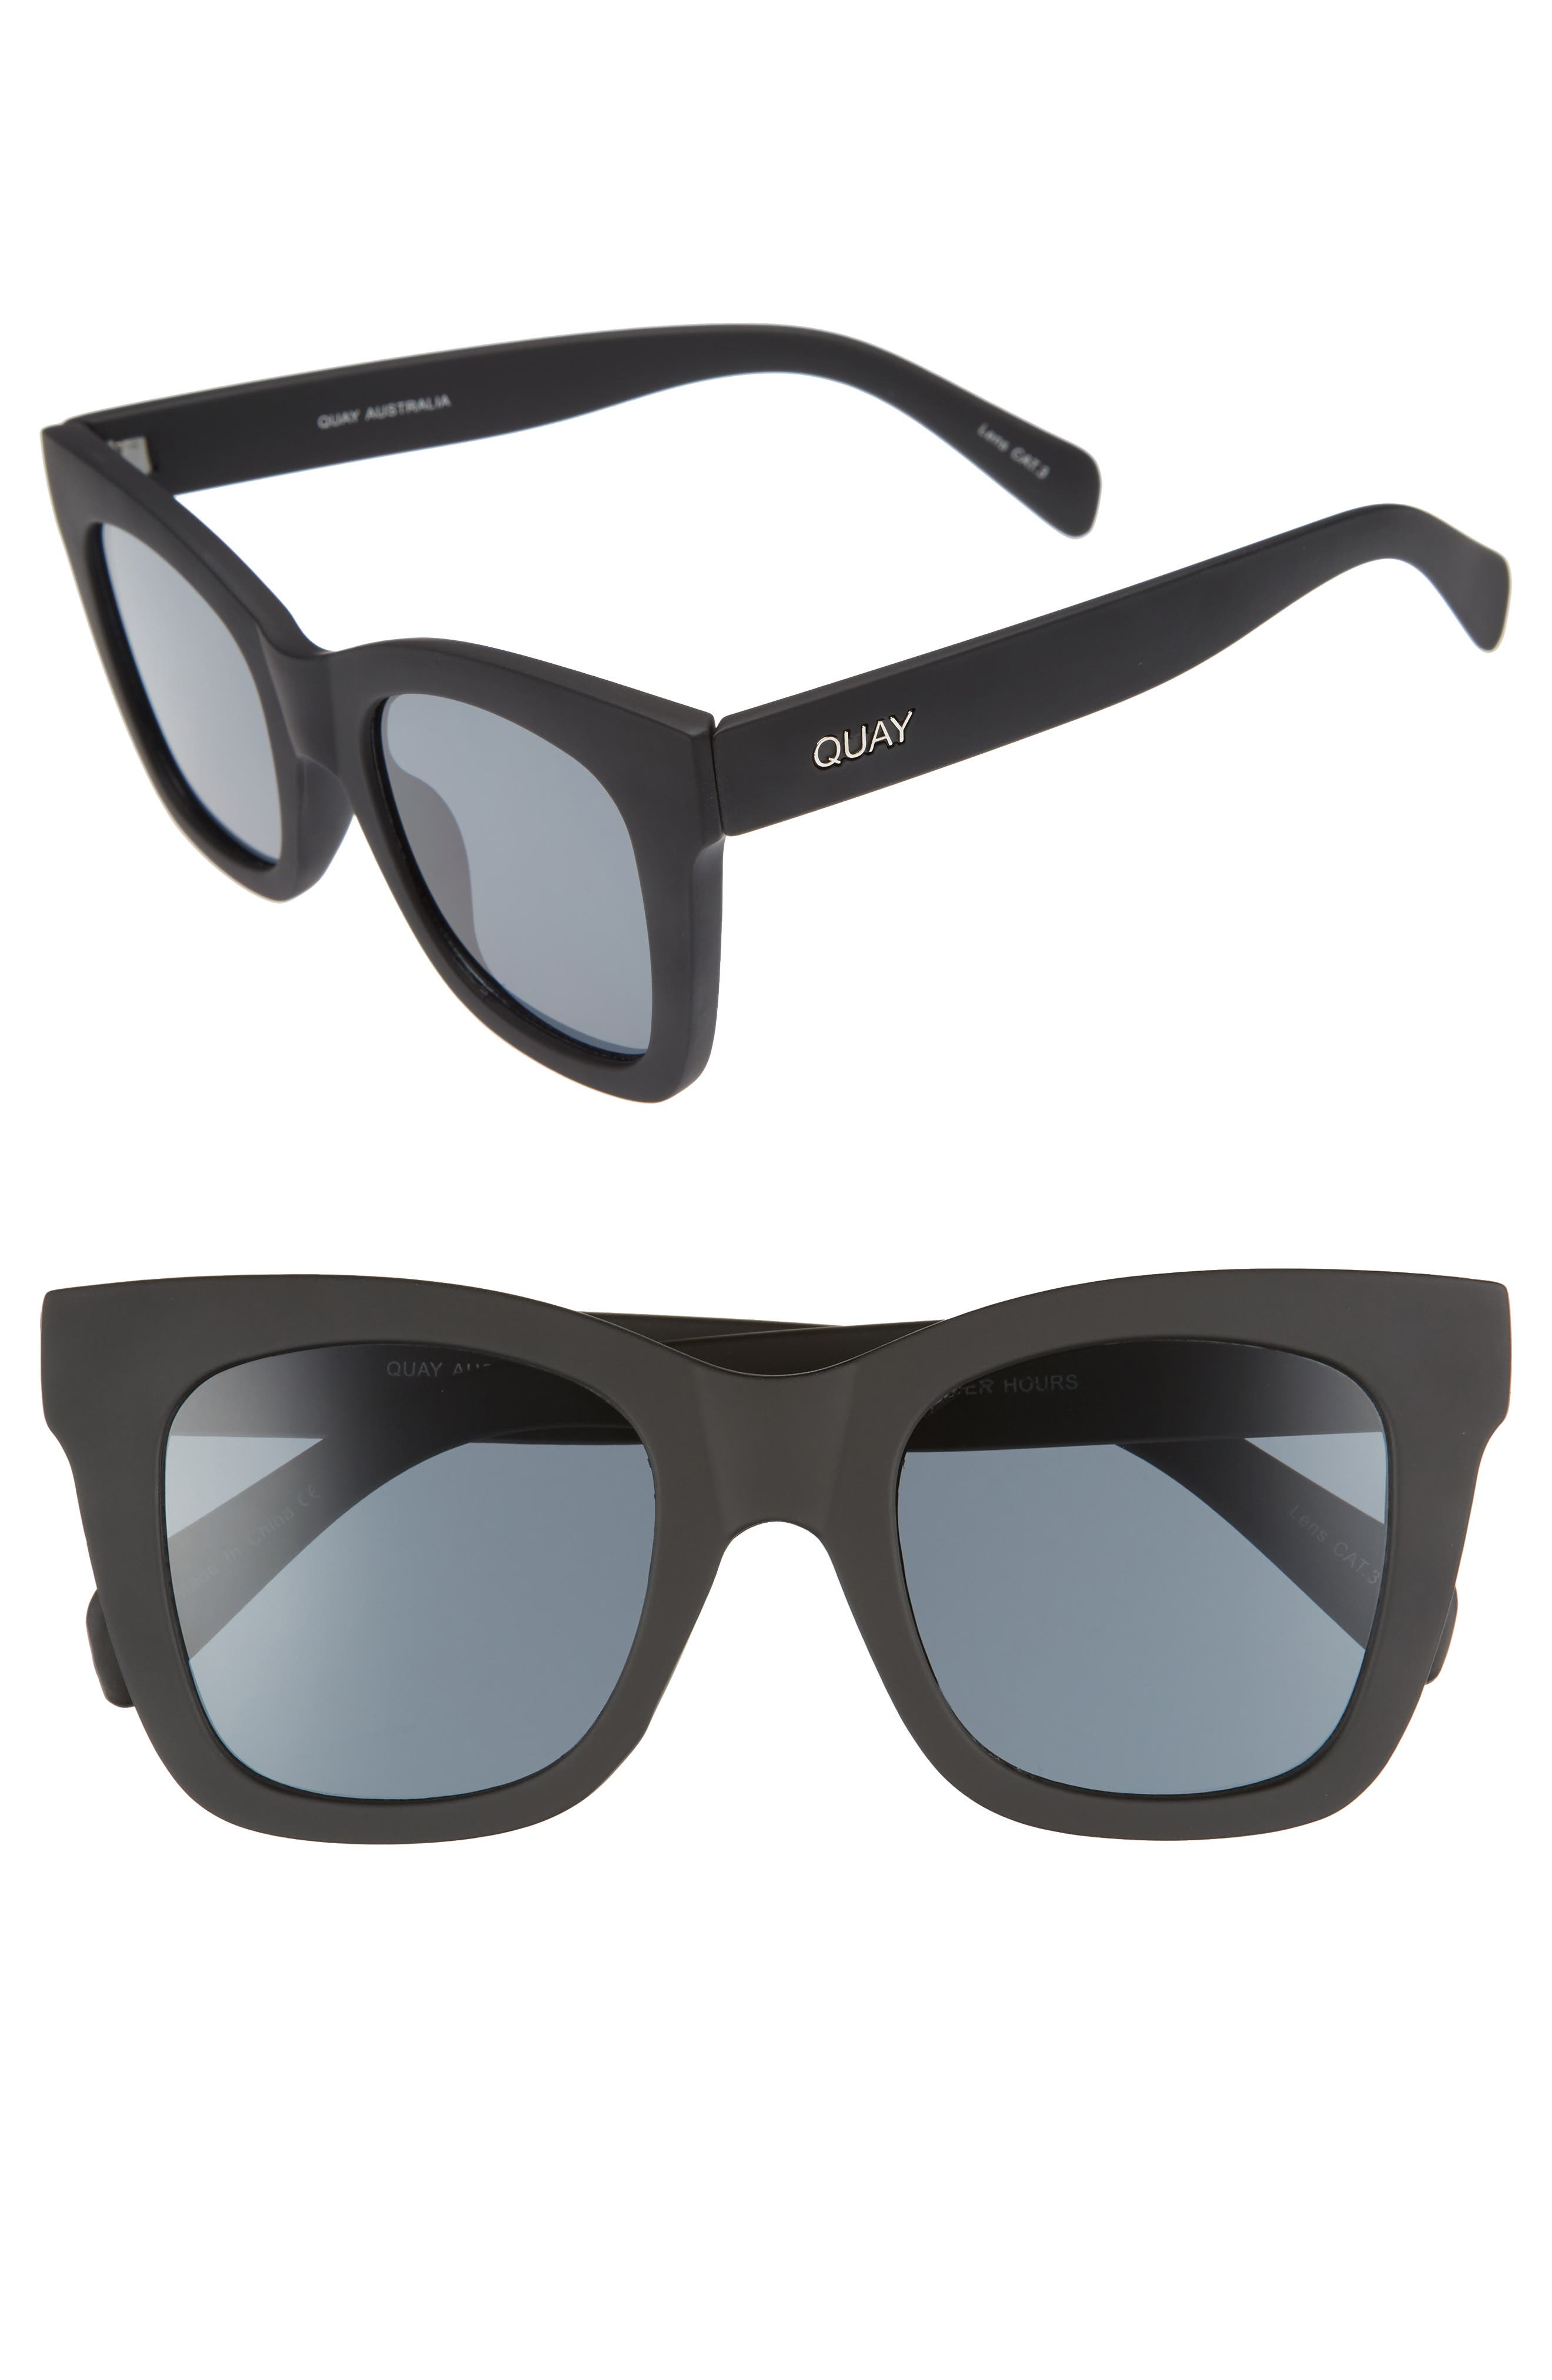 After Hours 50mm Square Sunglasses,                             Main thumbnail 1, color,                             BLACK SMOKE